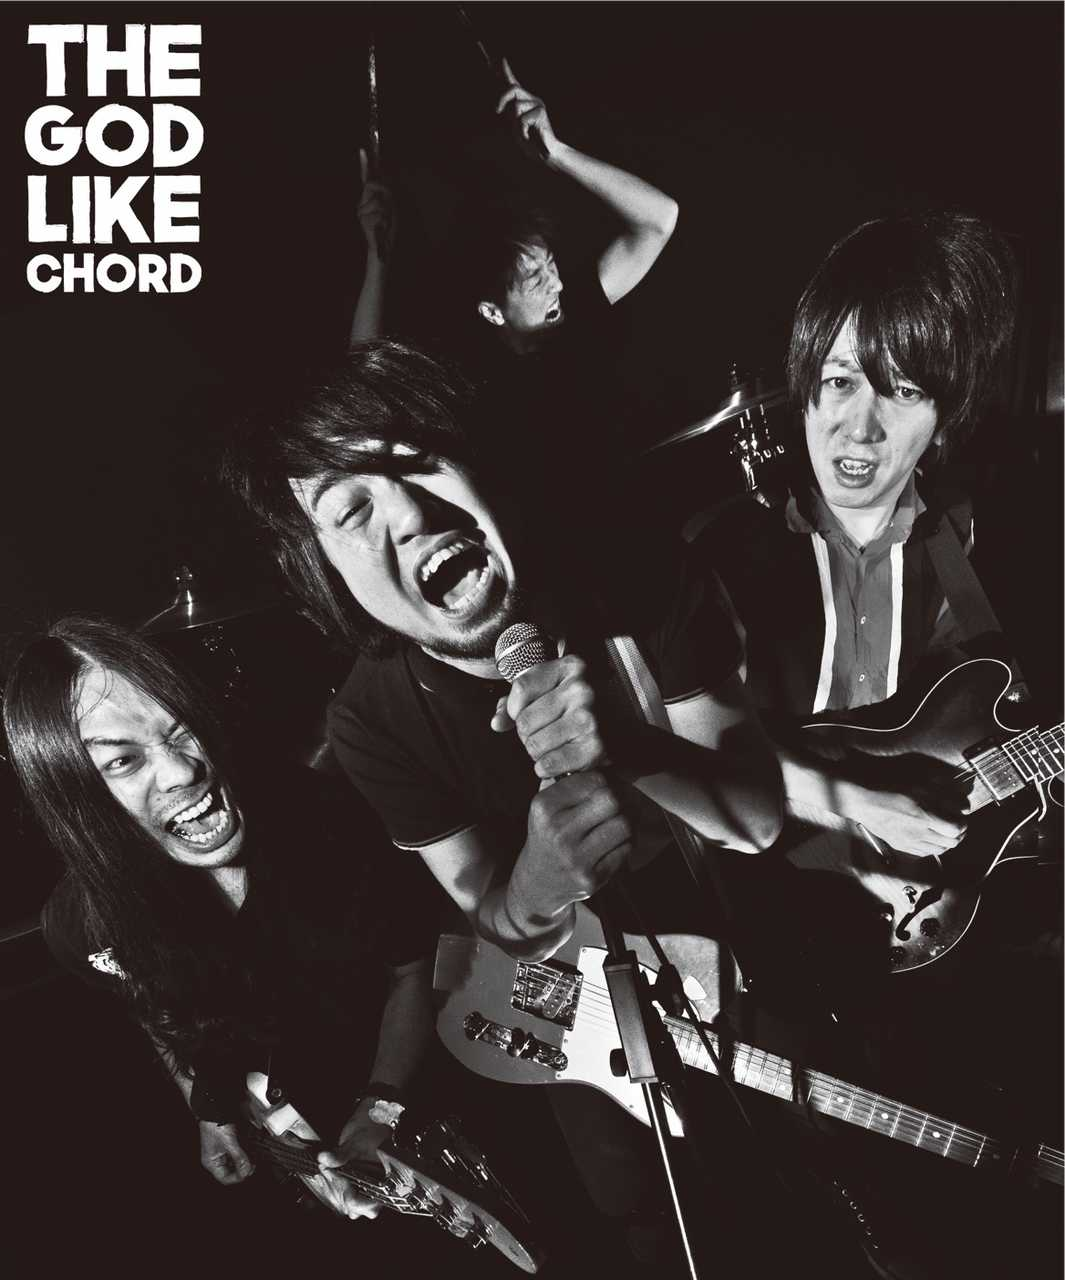 THE GOD LIKE CHORD